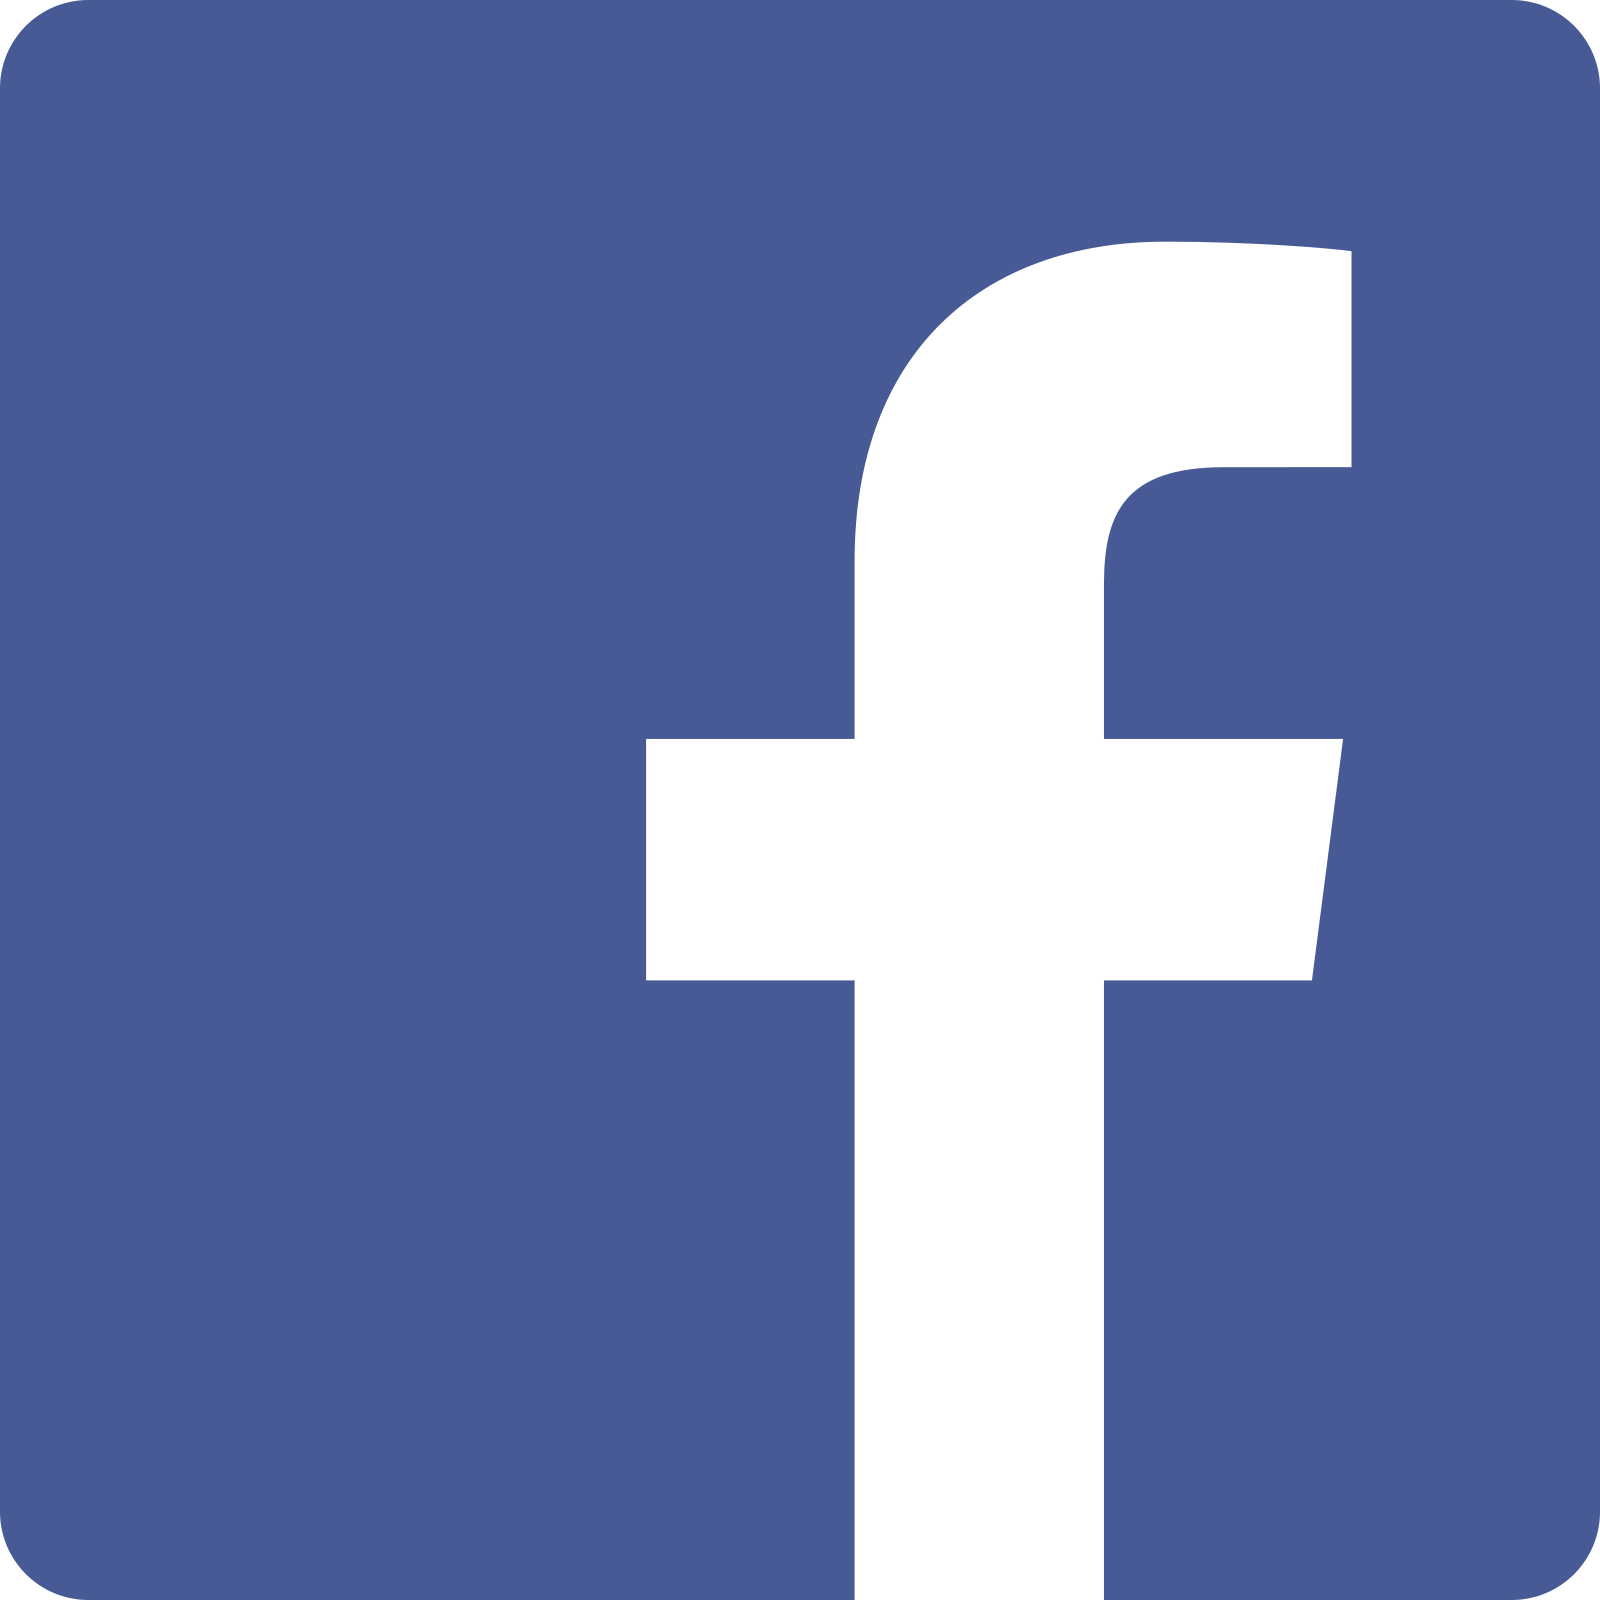 facebook-icone-icon-2